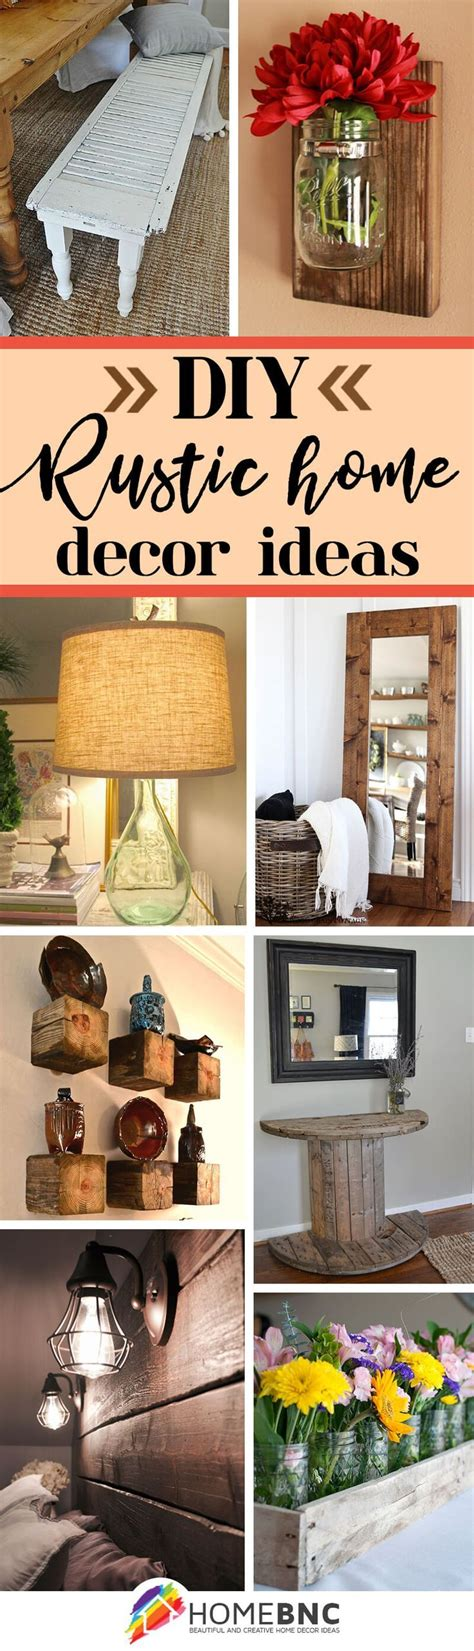 diy rustic home decor ideas diy rustic home decor ideas our home decor